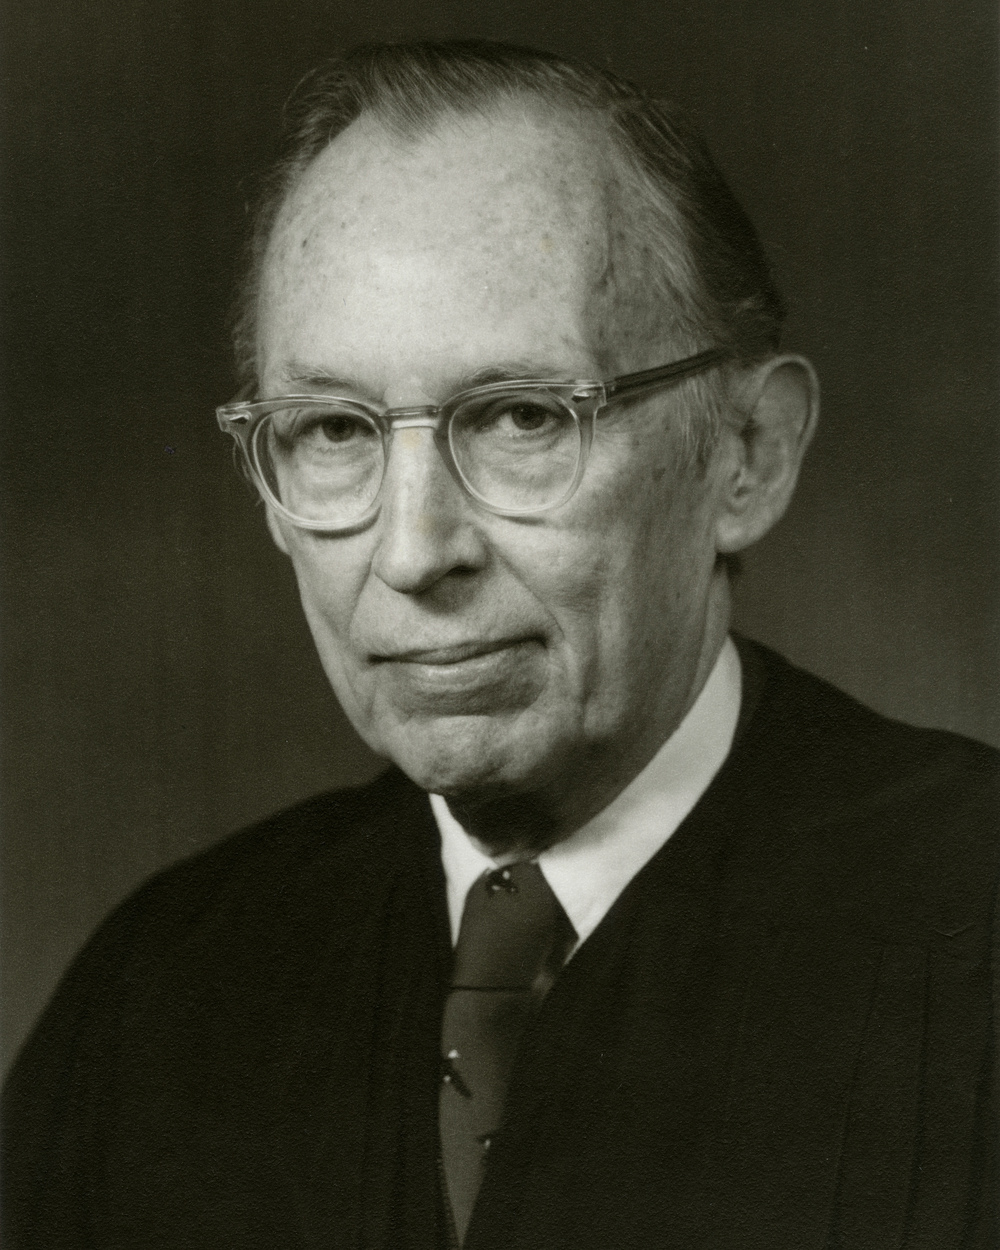 Justice Lewis Powell only took part in the abortion cases after it was agreed to re-argue the cases in June 1972.